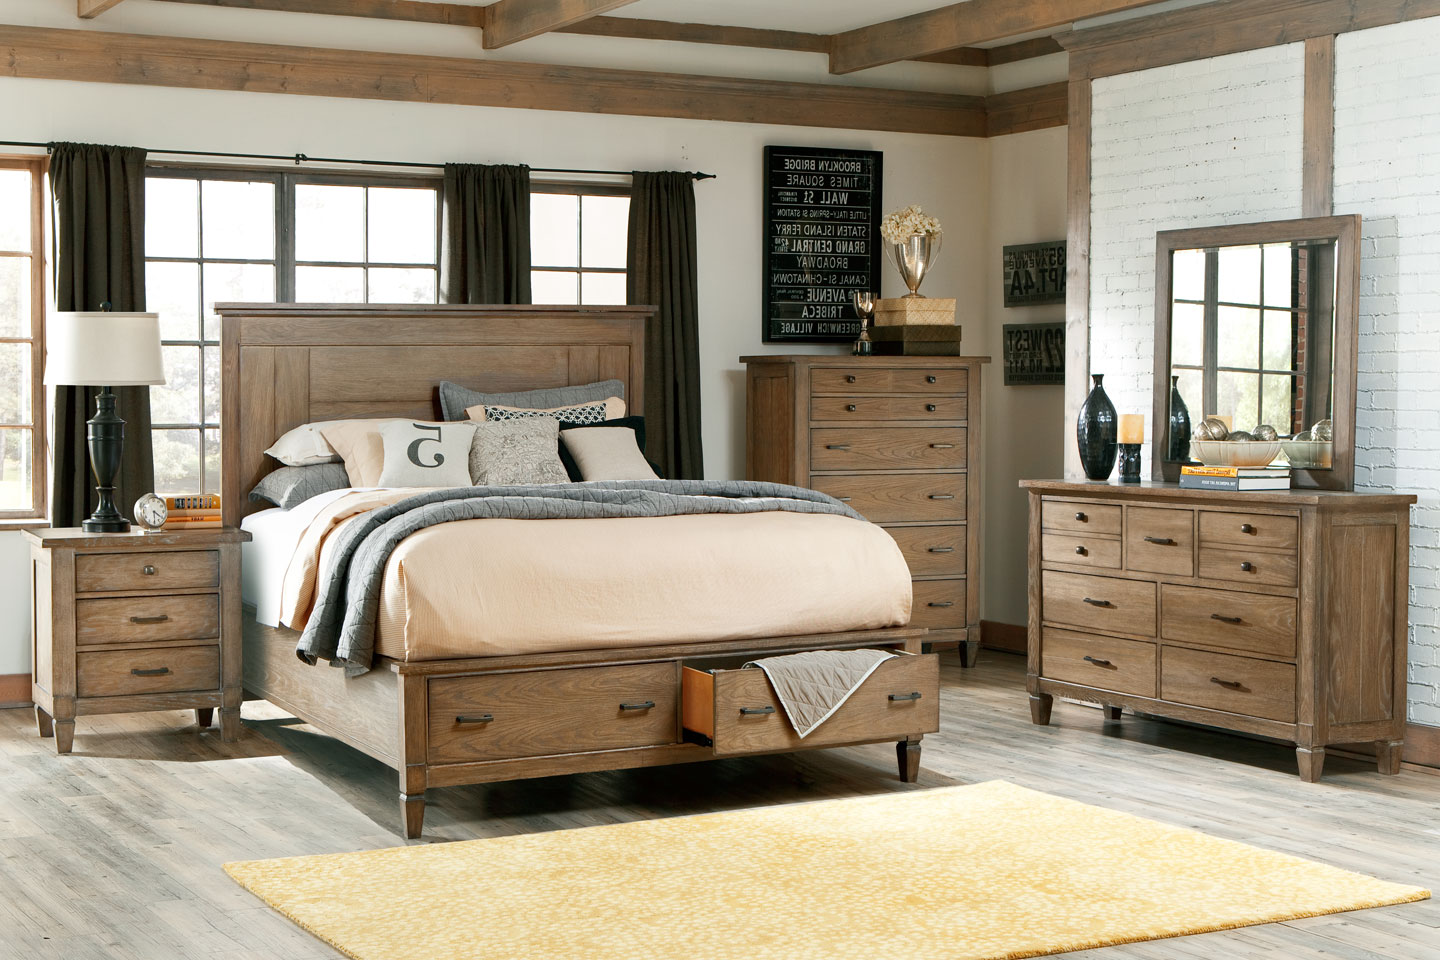 Gavin wood bedroom furniture collection wood bedroom for Bedroom furniture